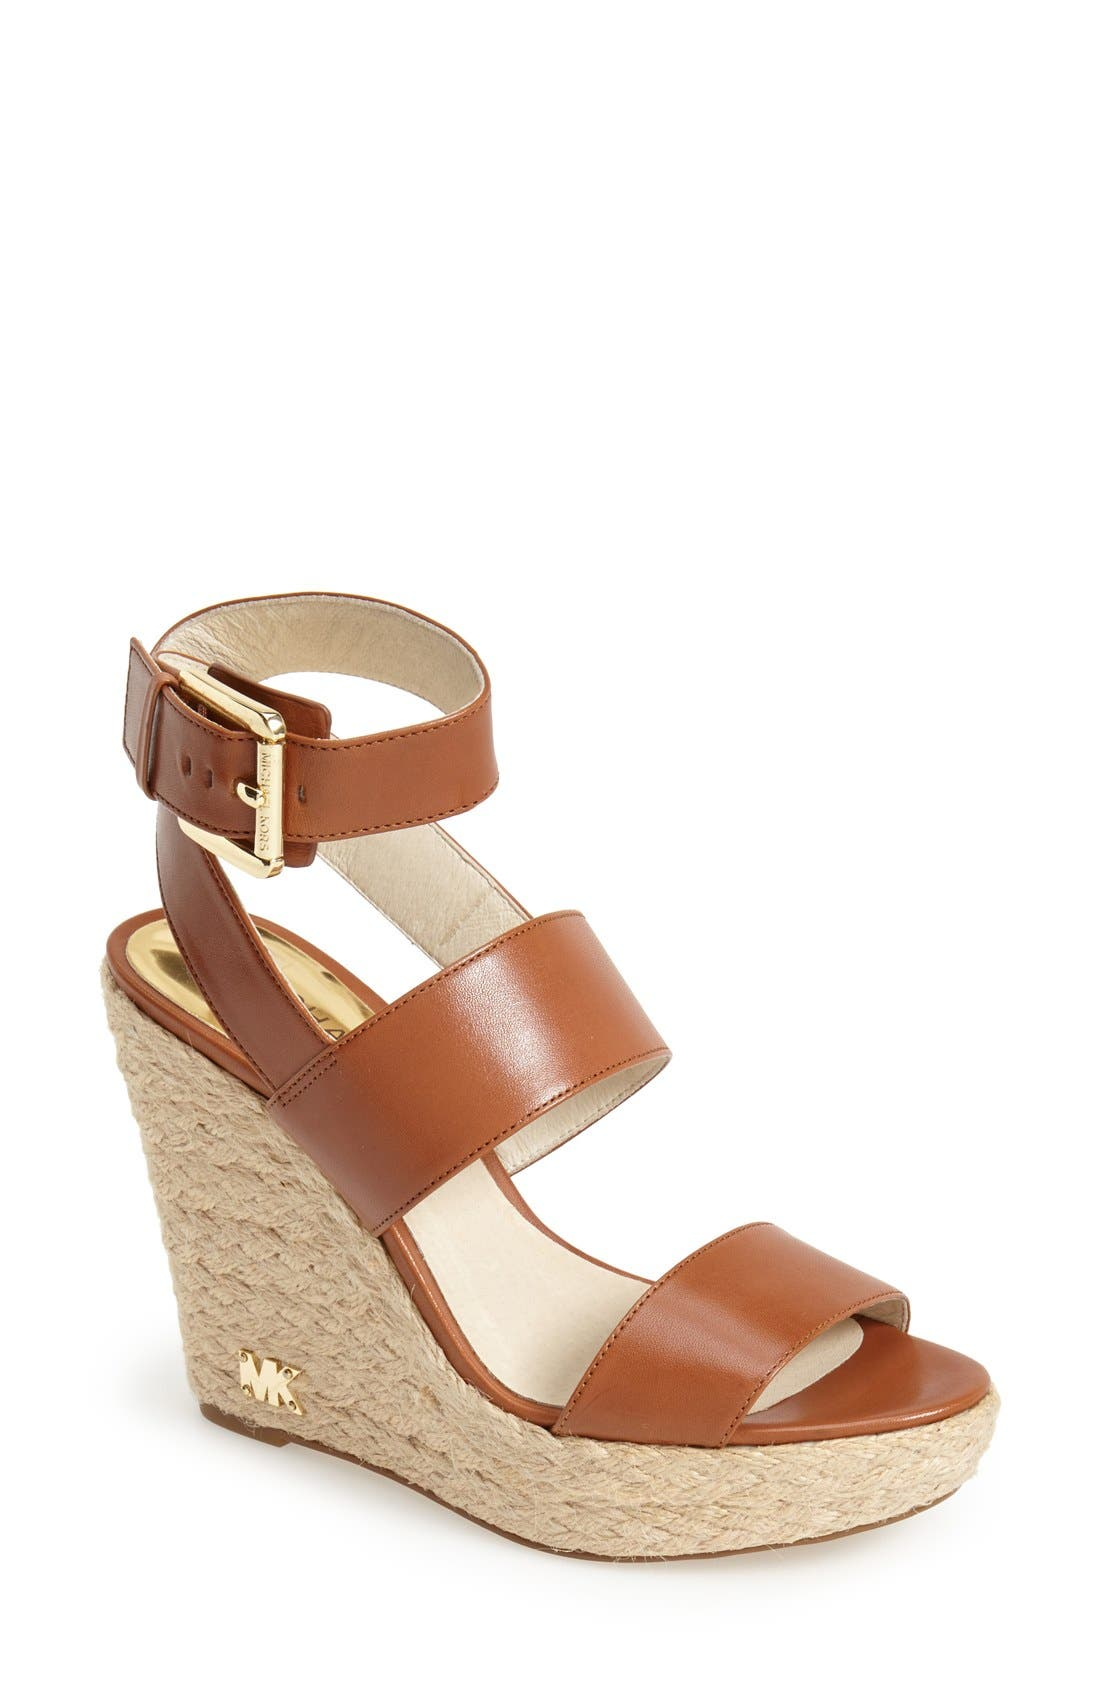 Alternate Image 1 Selected - MICHAEL Michael Kors 'Posey' Ankle Strap Espadrille Wedge Sandal (Women)